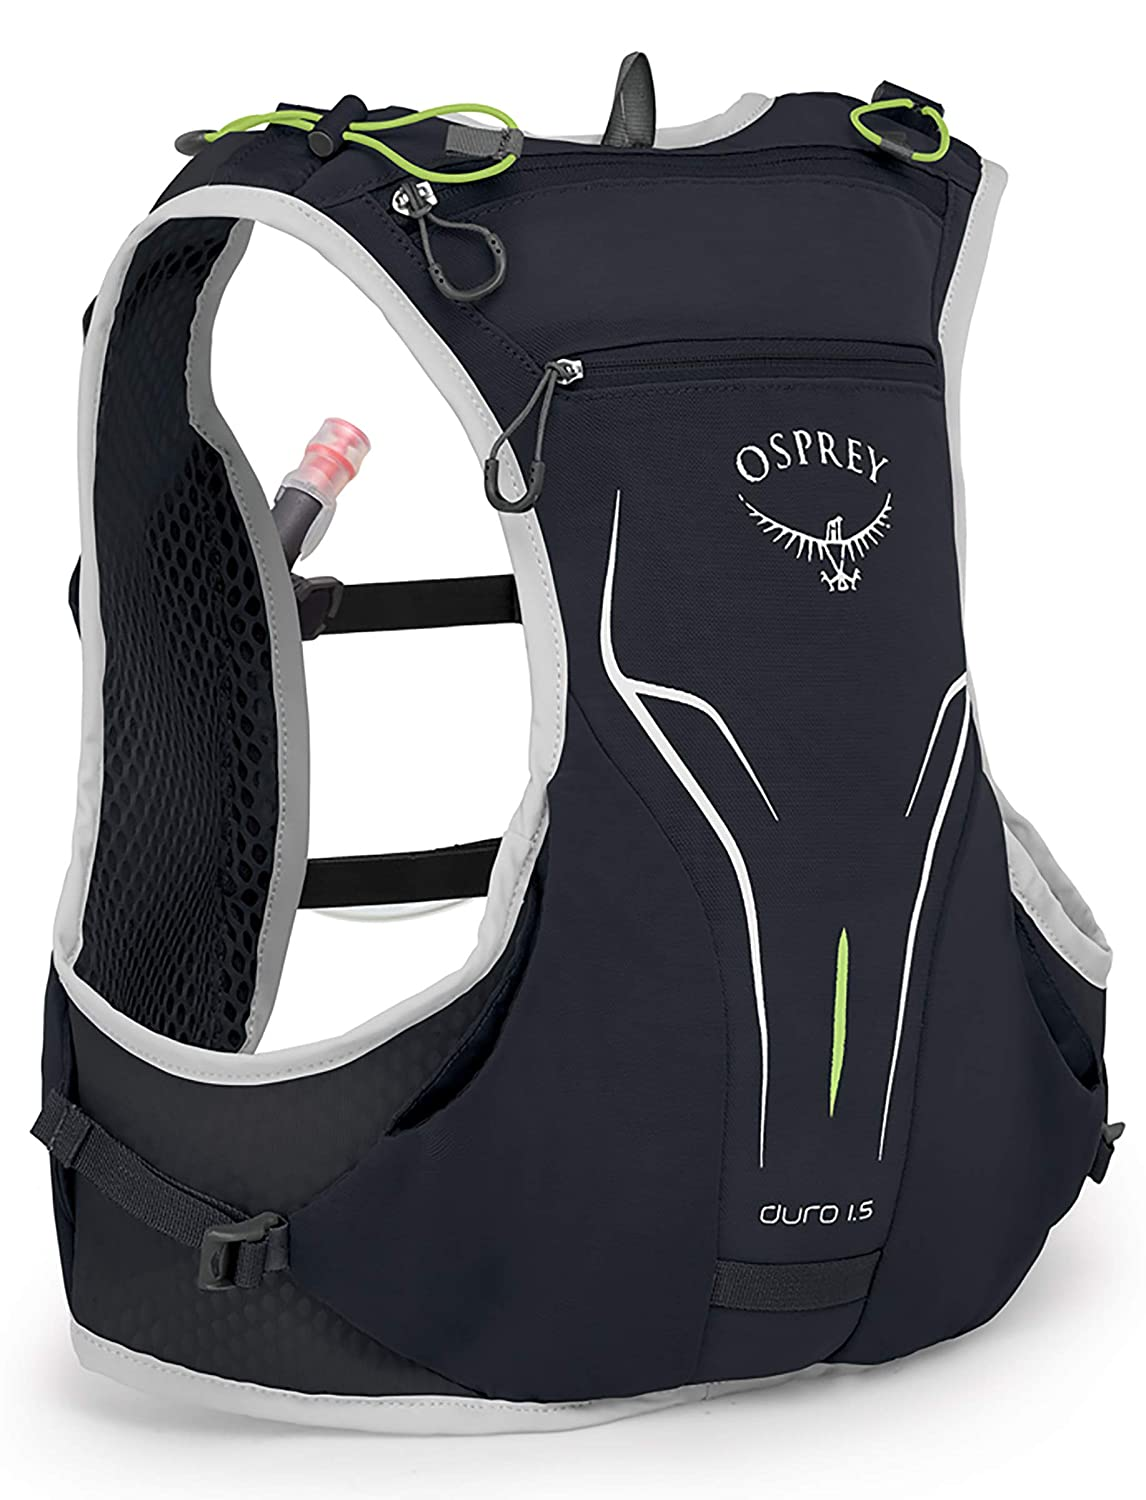 Osprey Packs Duro 1.5 Running Hydration Vest